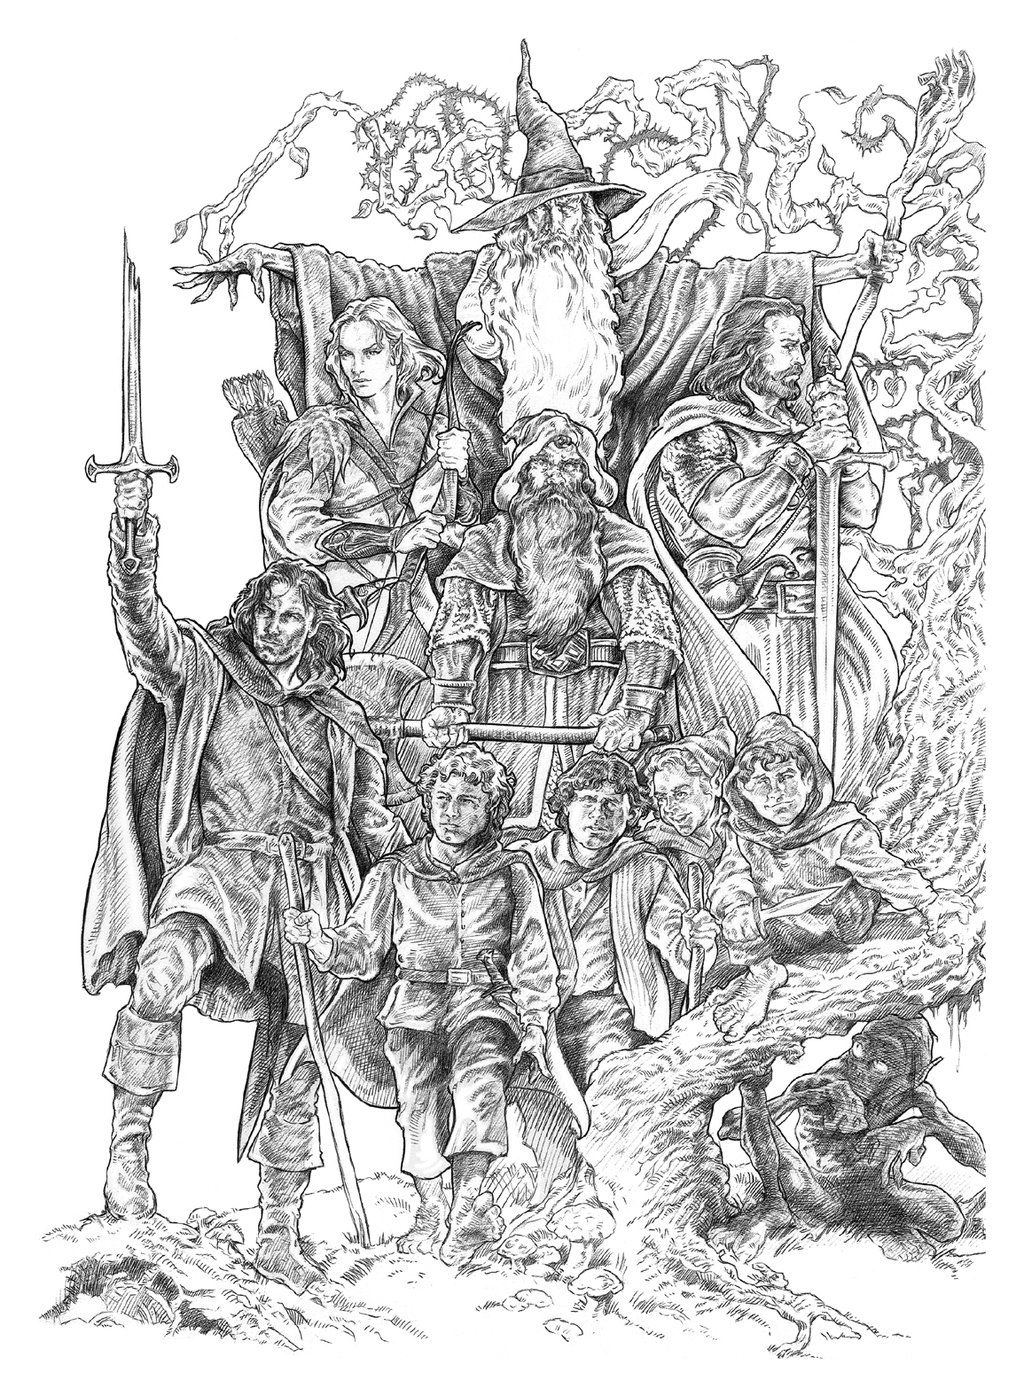 Pippin Y Merry By Nachocastro Deviantart Com On Deviantart Gandalf With Merry And Pippin From Lord Of The Rings Lotr Art Middle Earth Art Art